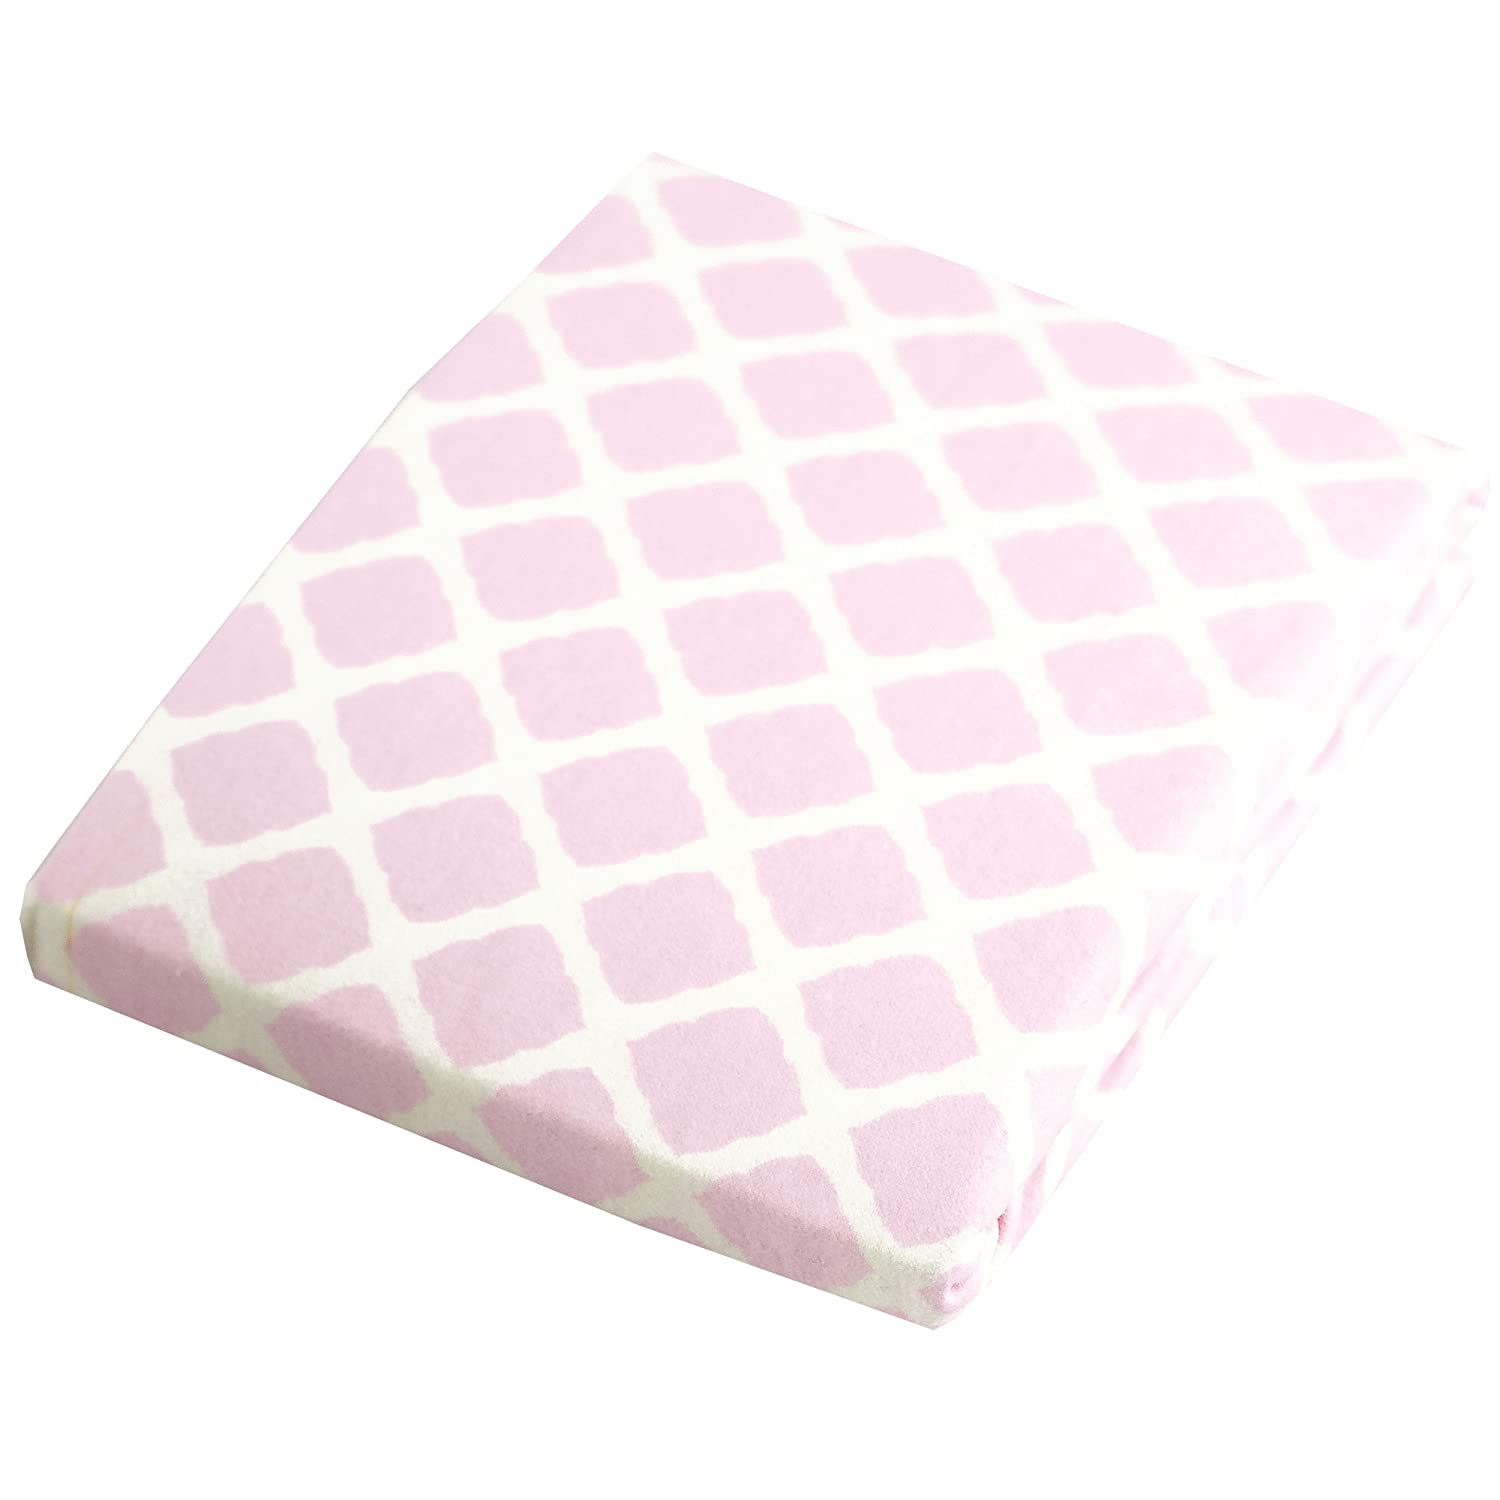 Kushies Changing Pad Cover for 1 pad, 100% breathable cotton, Made in Canada, Pink Lattice Kushies Baby S340-584